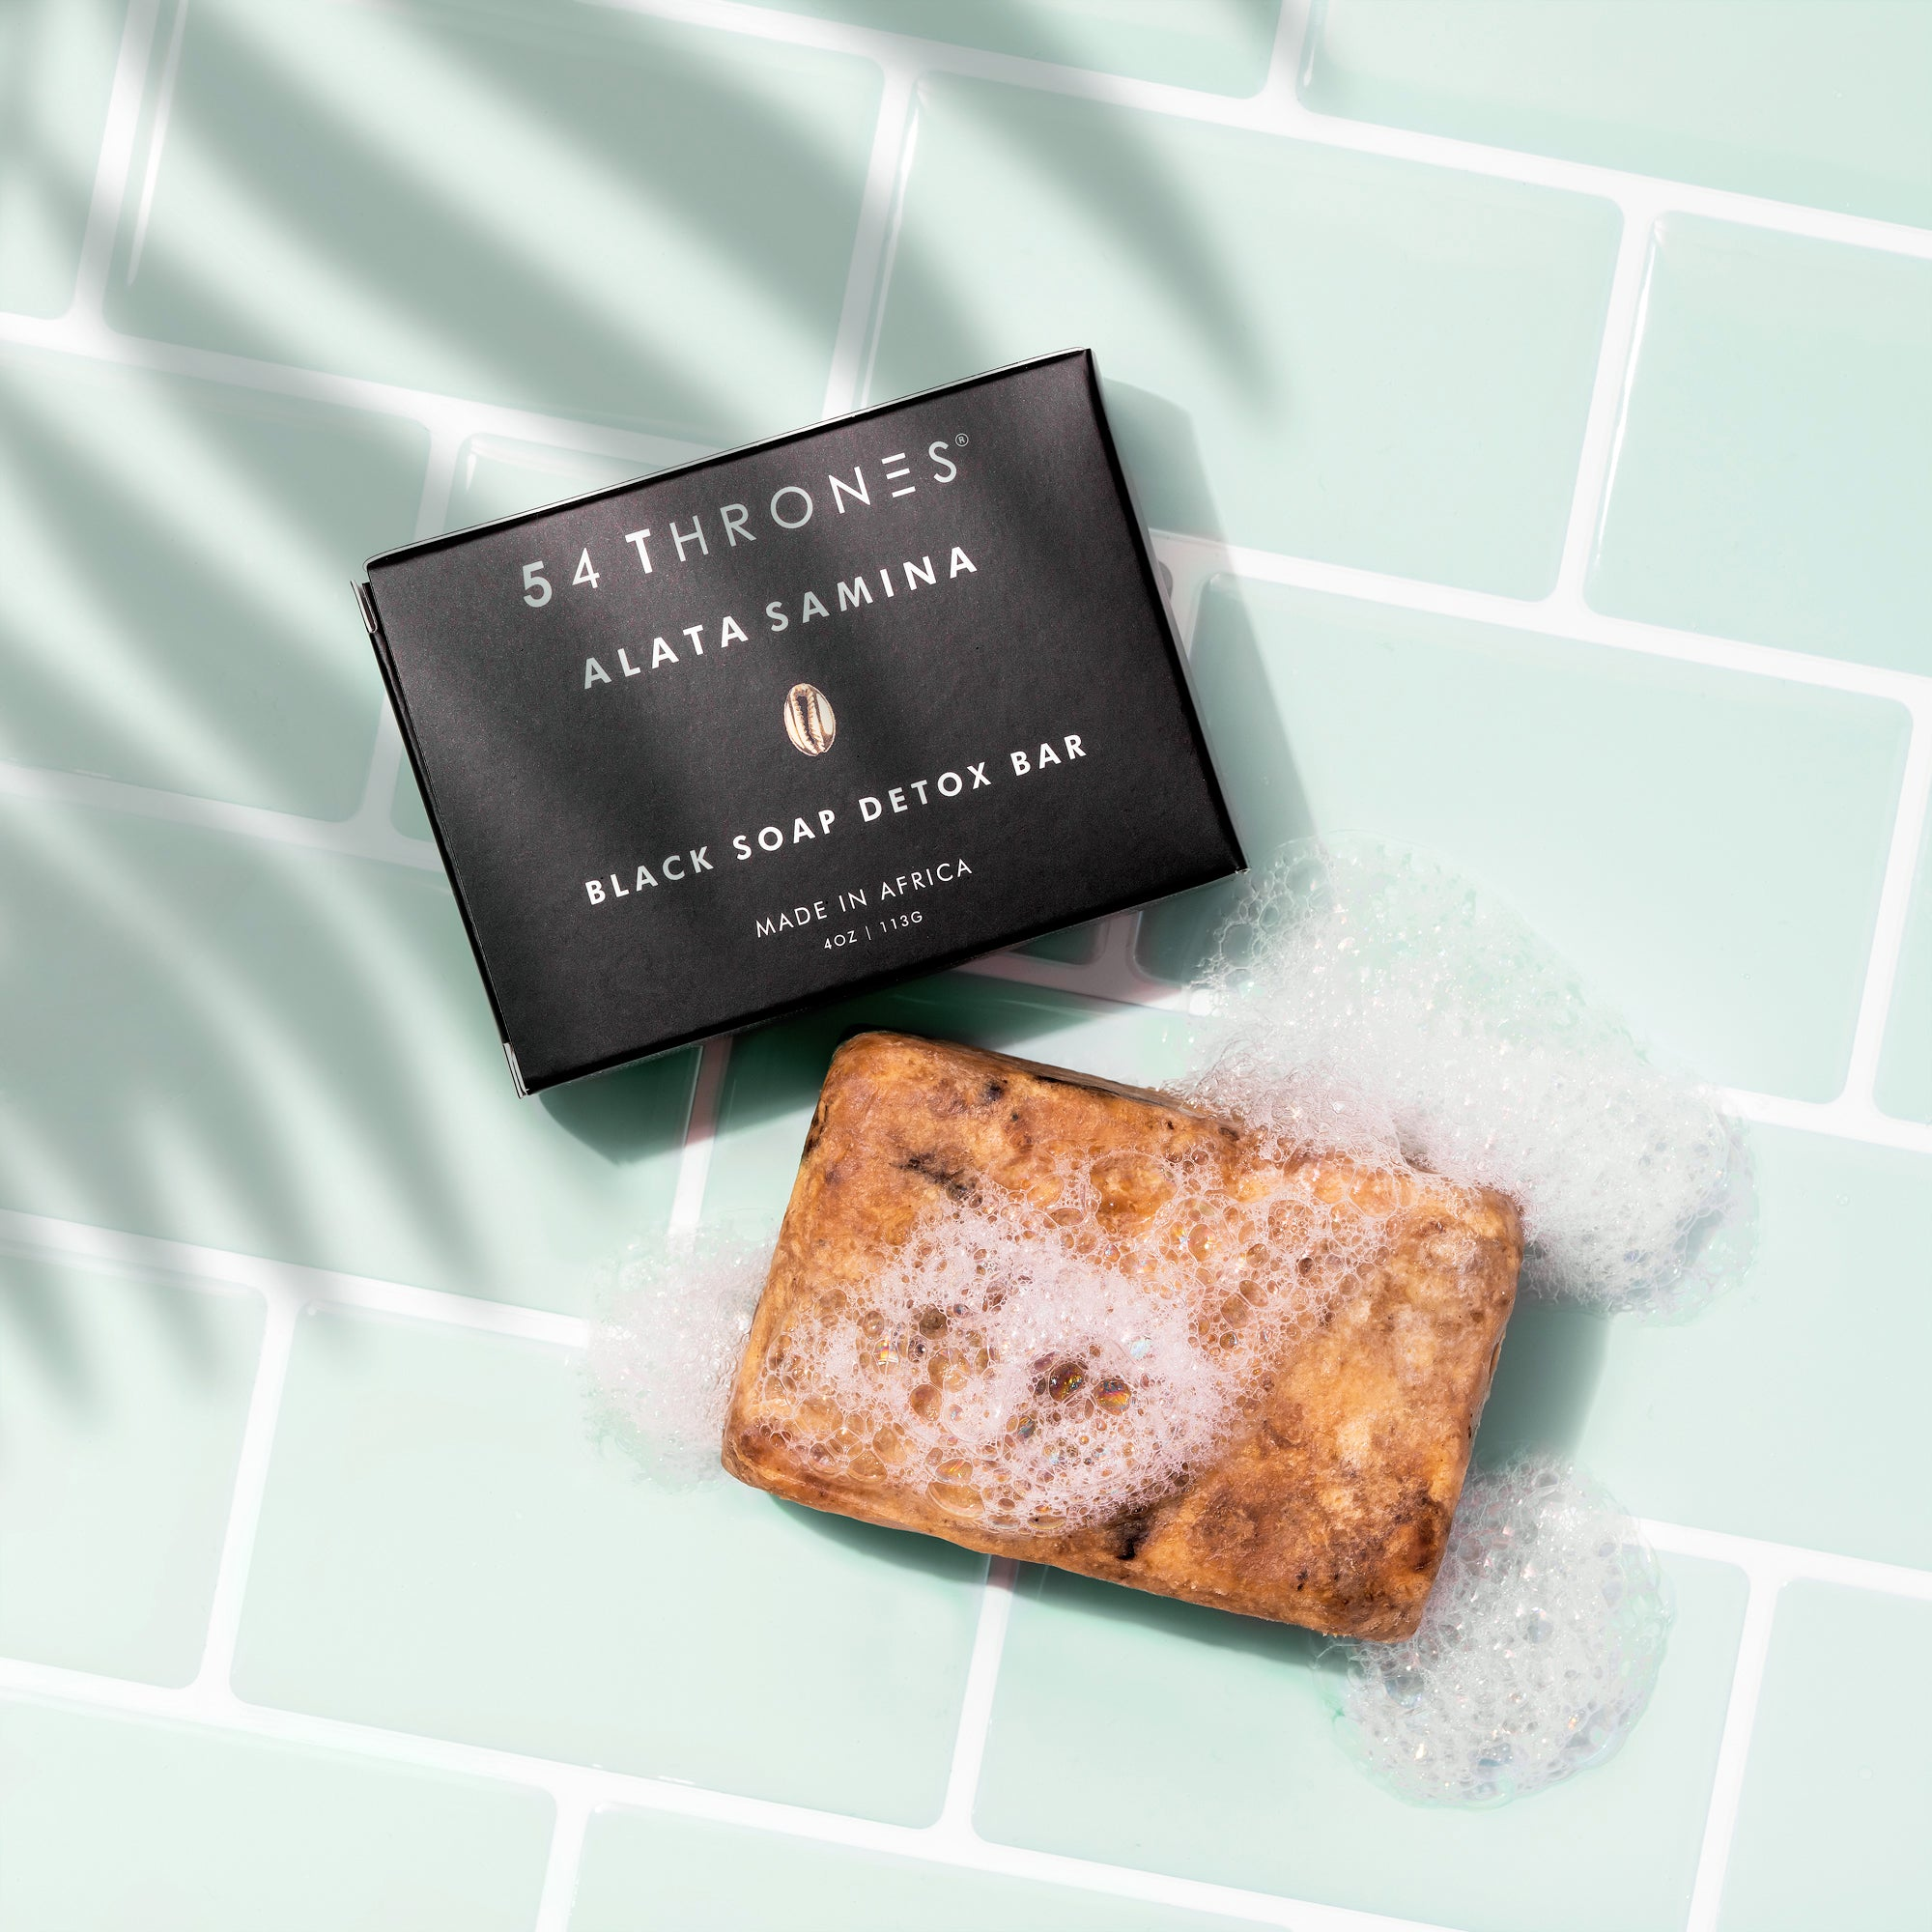 ALATA SAMINA: Black Soap Detox Bar